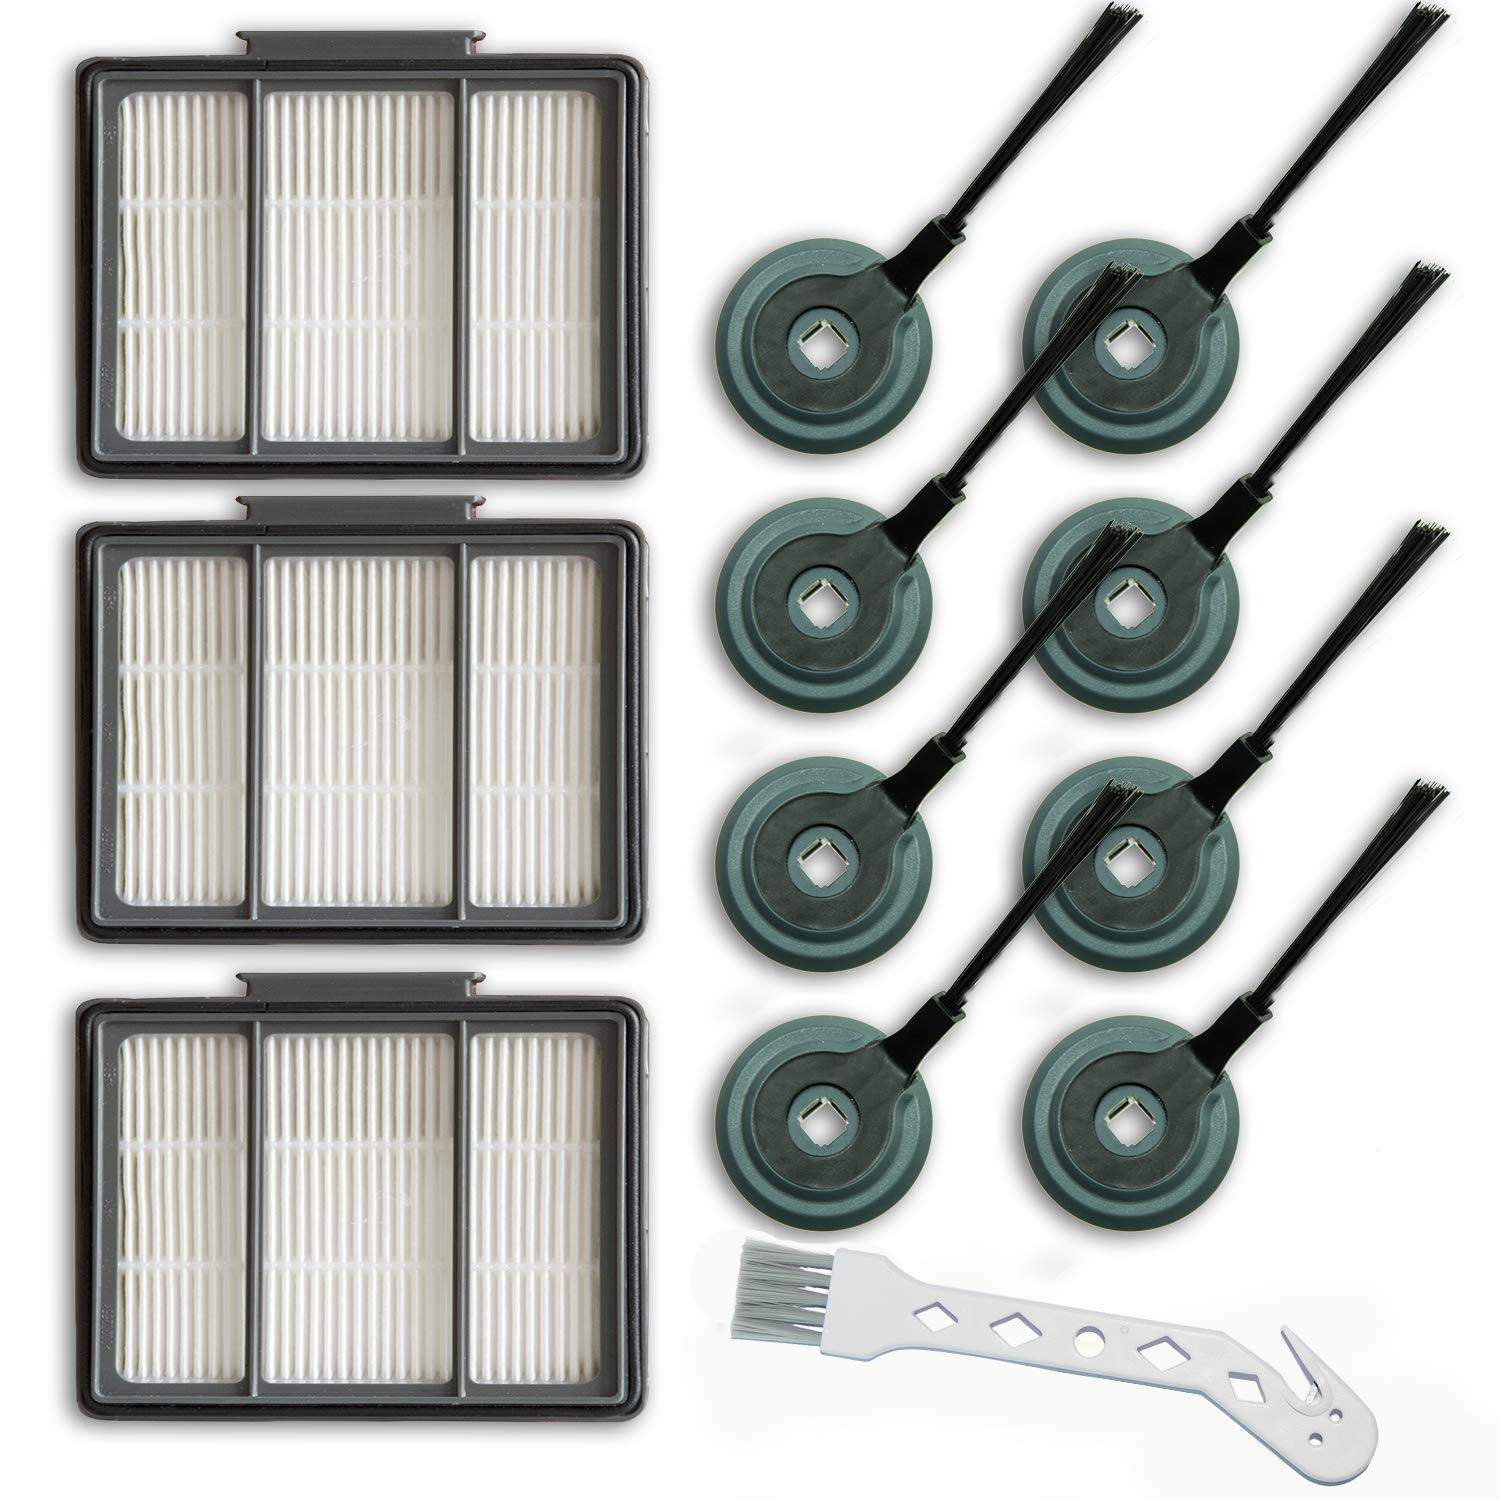 ION Robot Replacement Compatible for Shark S87 R85 RV850 Vacuum Cleaner(3 Filters & 8 Brushes) by SKROS